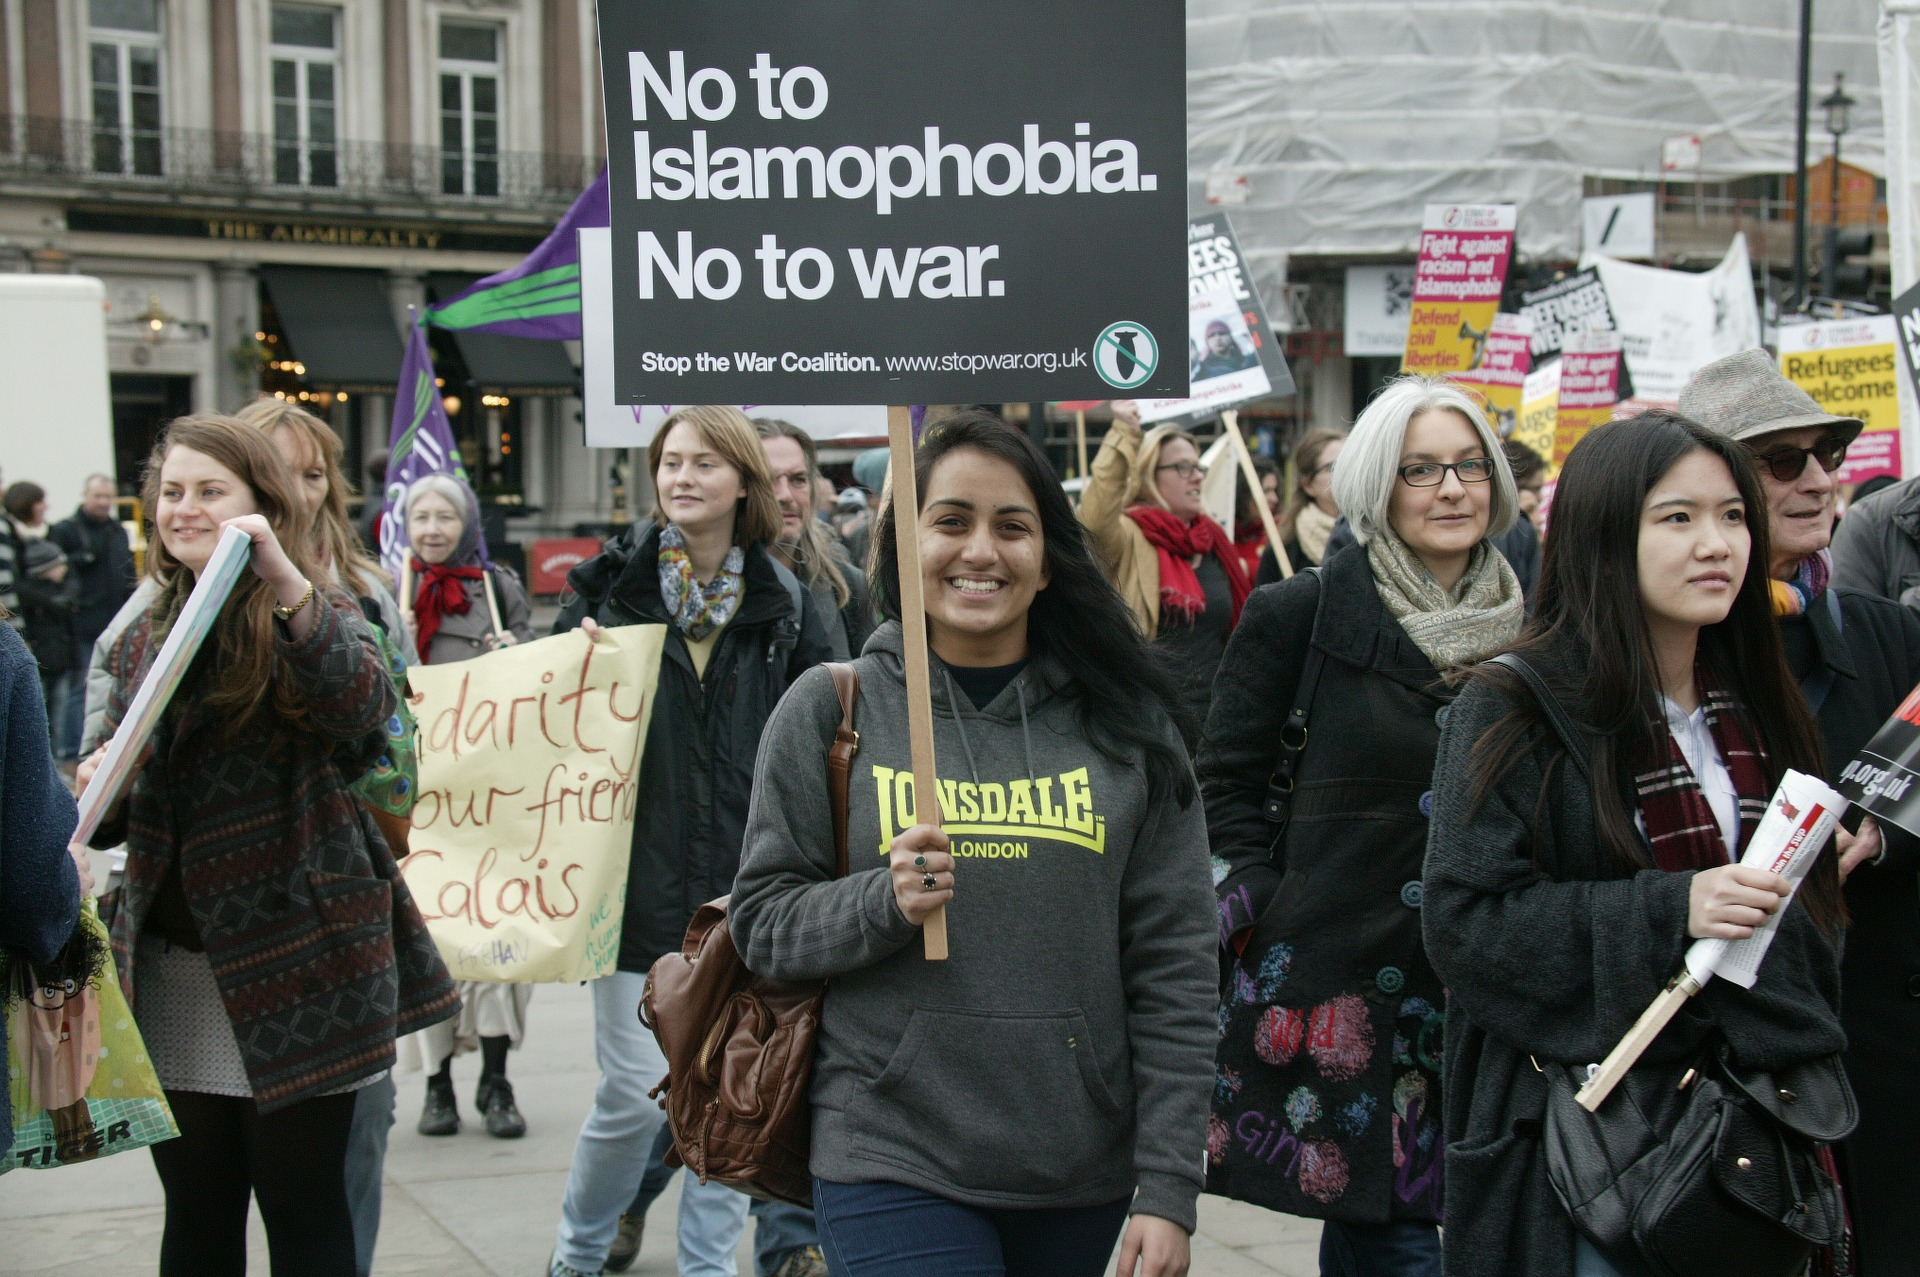 protest-1300861_1920